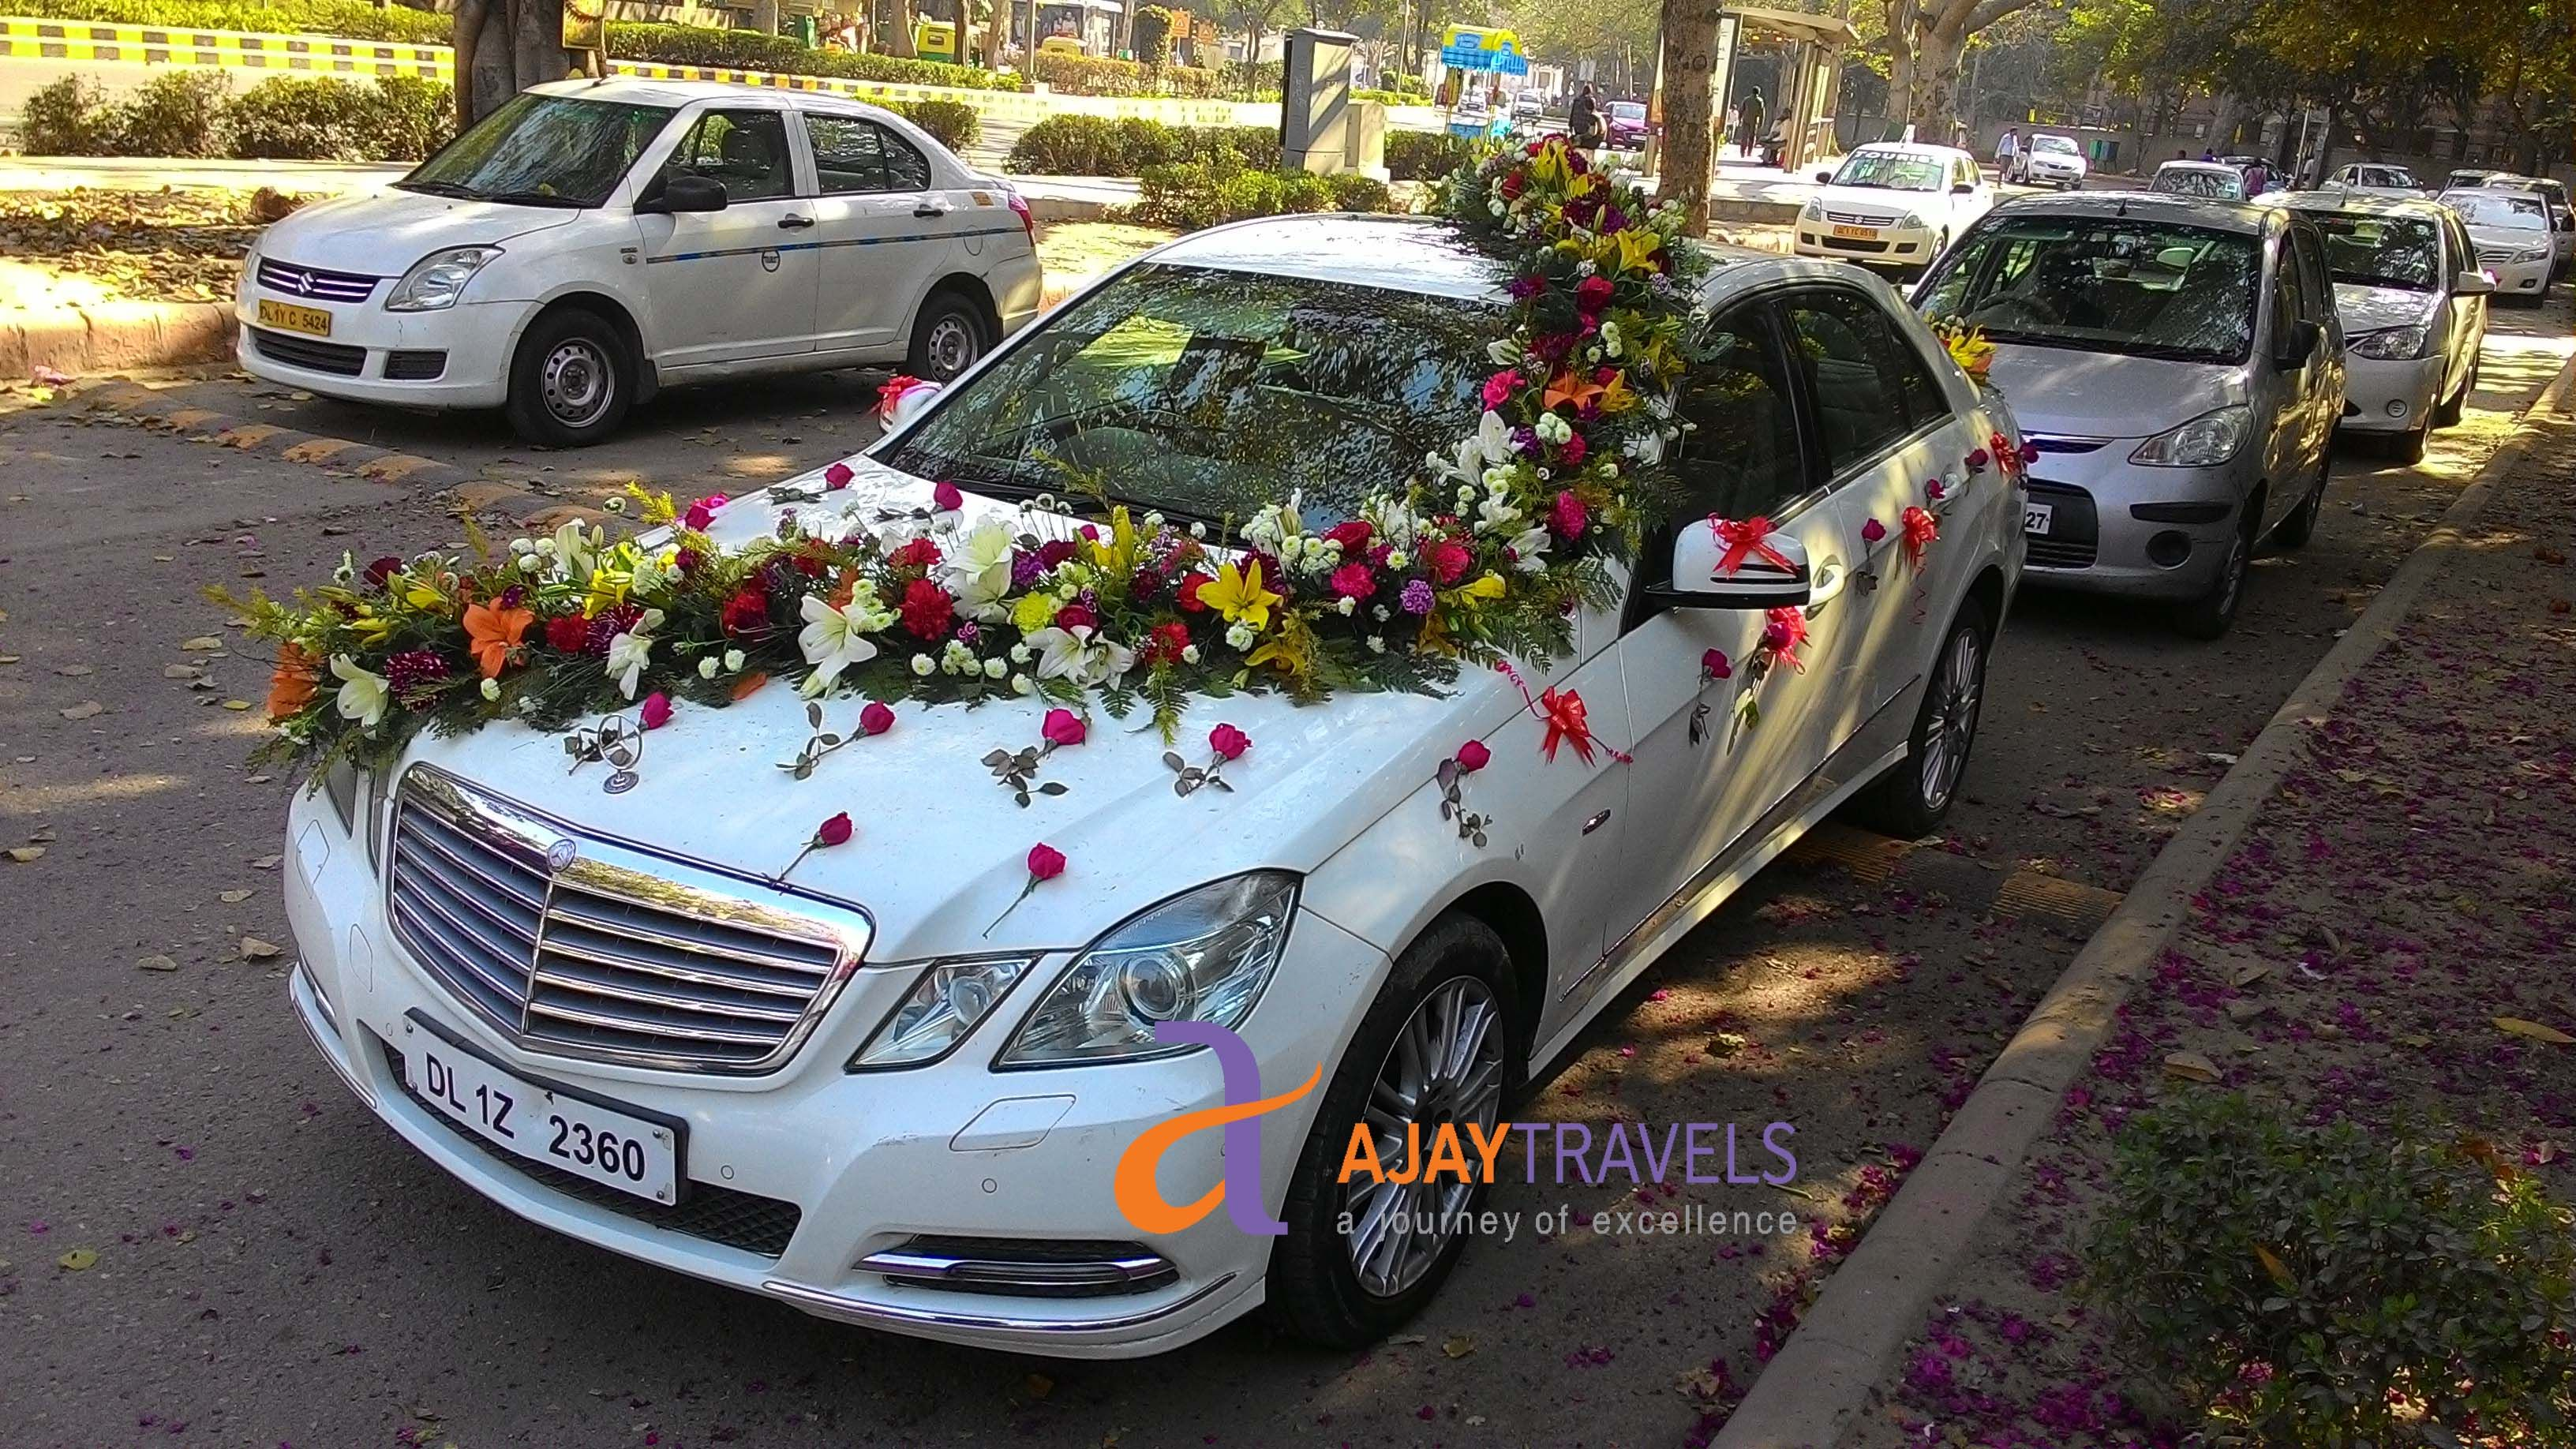 Pin by Rent Car For Wedding on Rent Car For Wedding | Pinterest ...